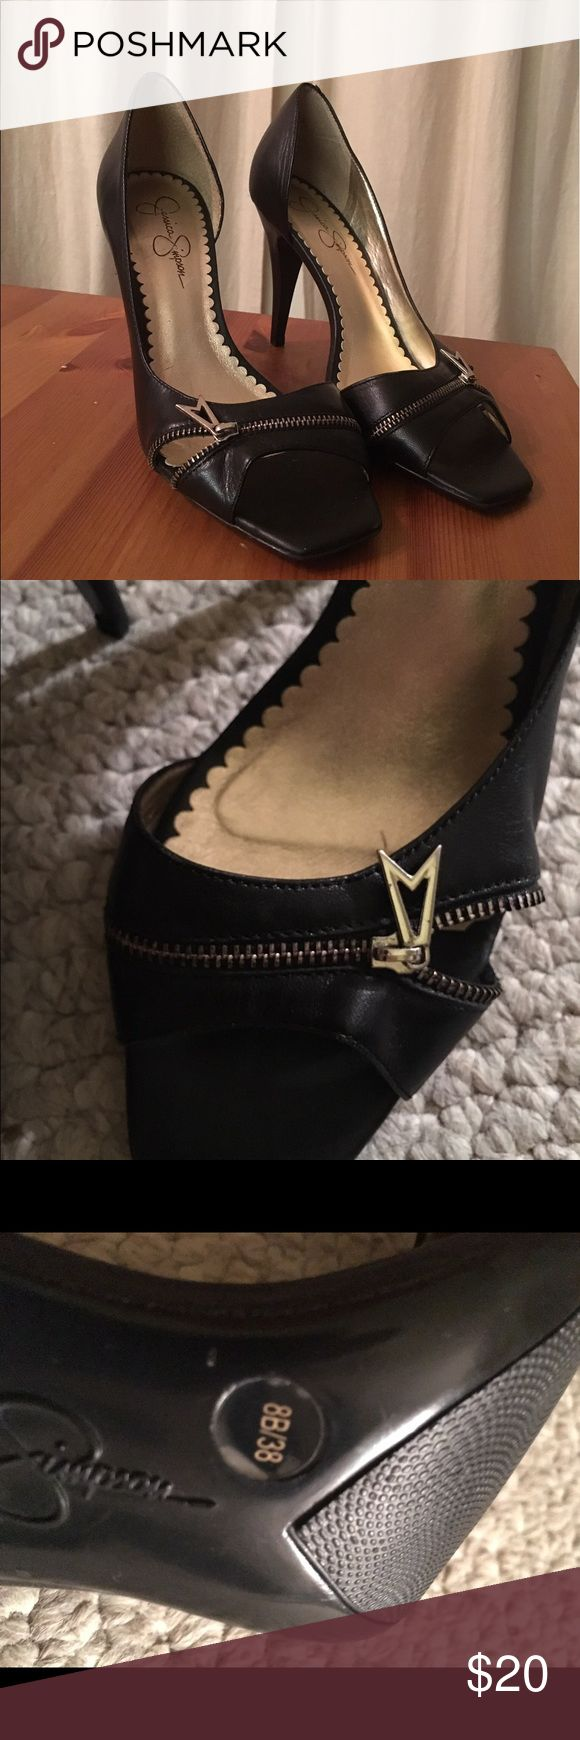 Jessica Simpson Peep Toe Black Pumps Adorable peep toes with super cute zipper detail, really great condition with little wear- fit too tight for me (I wear 8.5/9) Jessica Simpson Shoes Heels